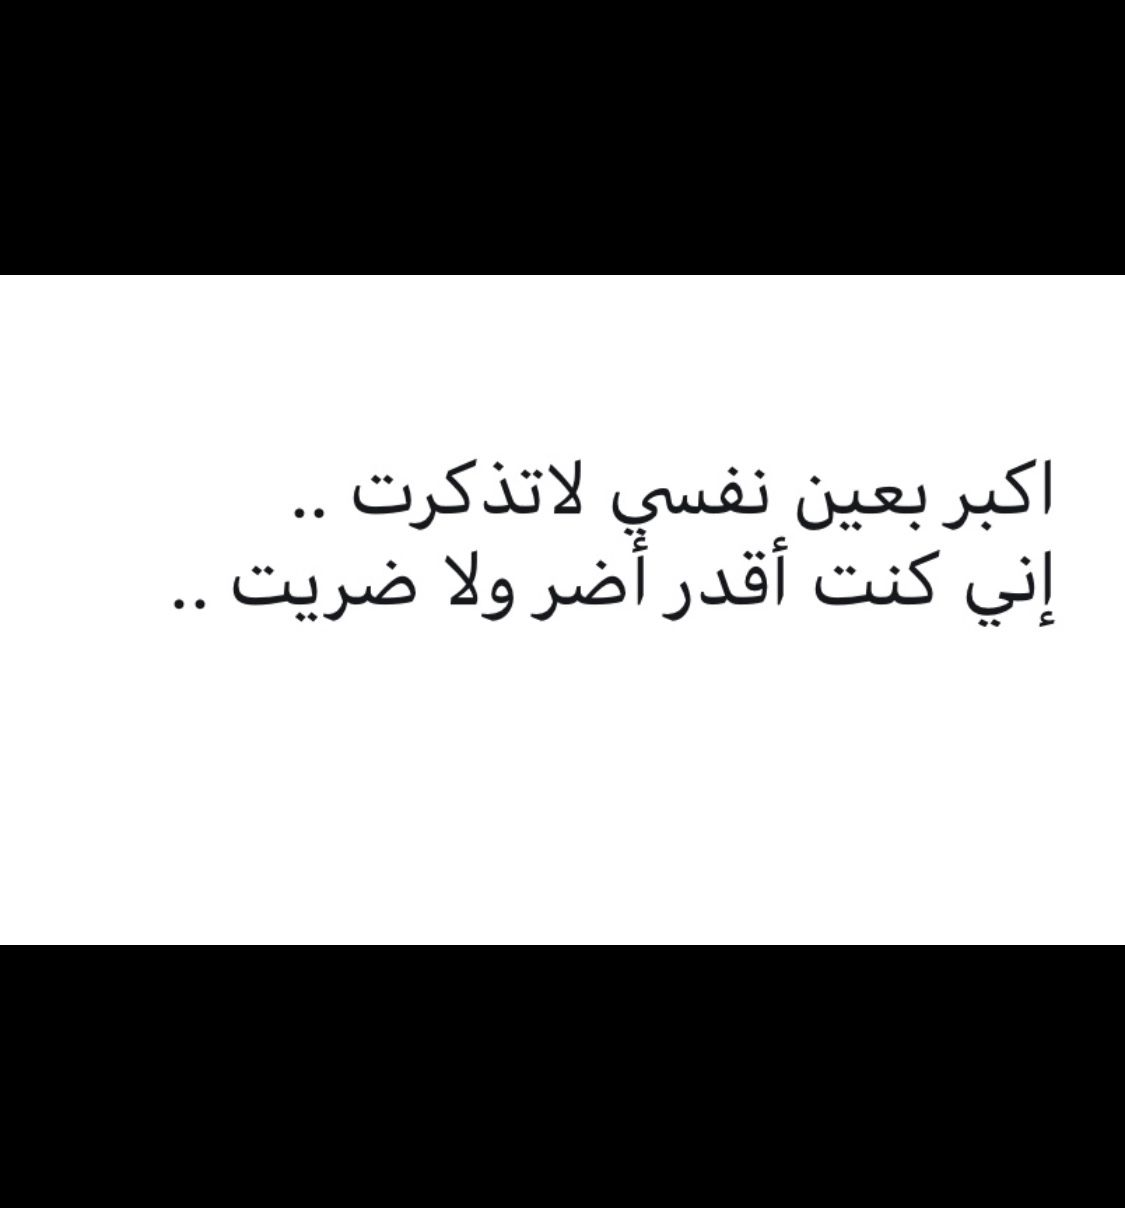 Pin By سارهـ On مشاعر Some Words Words Quotes